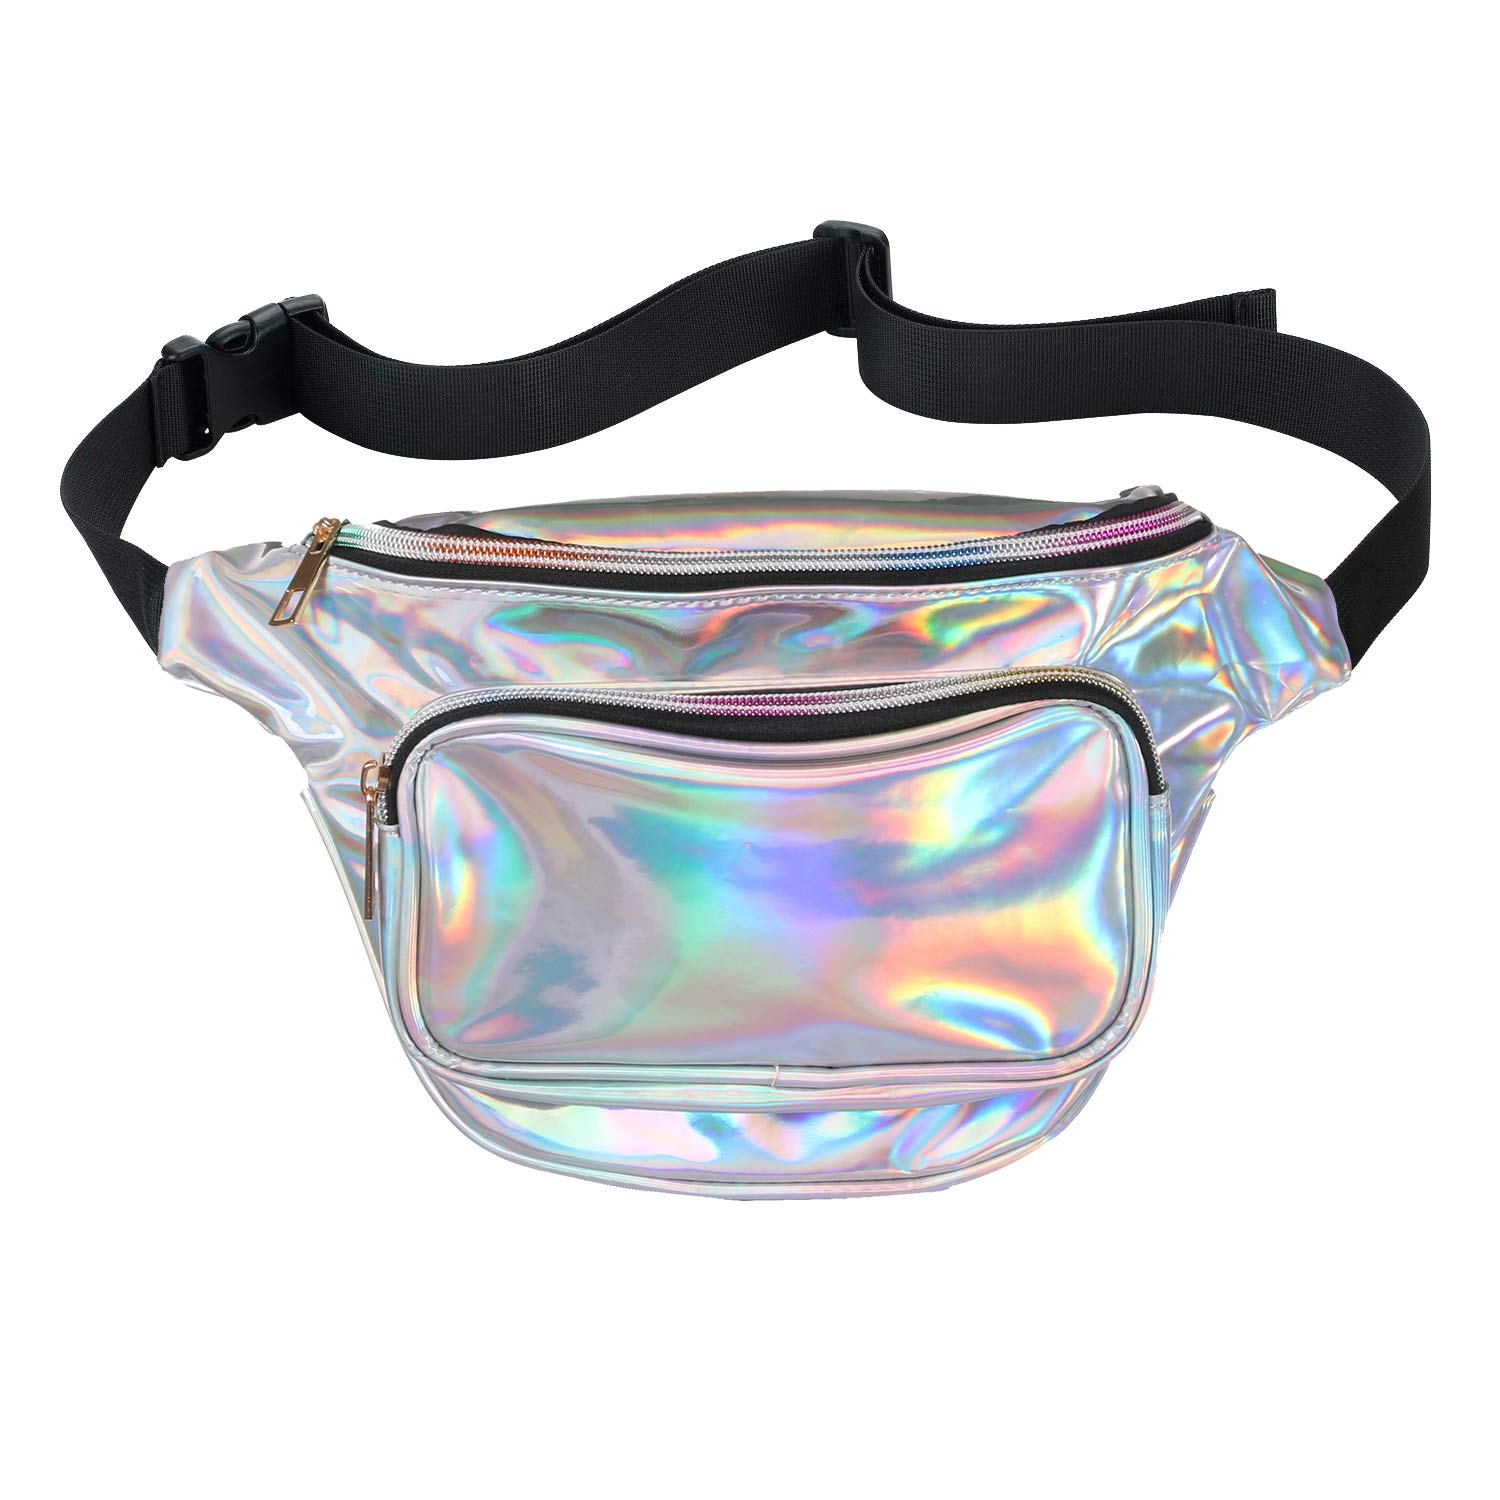 RIDPIX Fanny Pack For Women Cute Fashion Waist Pack With Adjustable Belt For Travel, Parties, Carnivals, Festivals